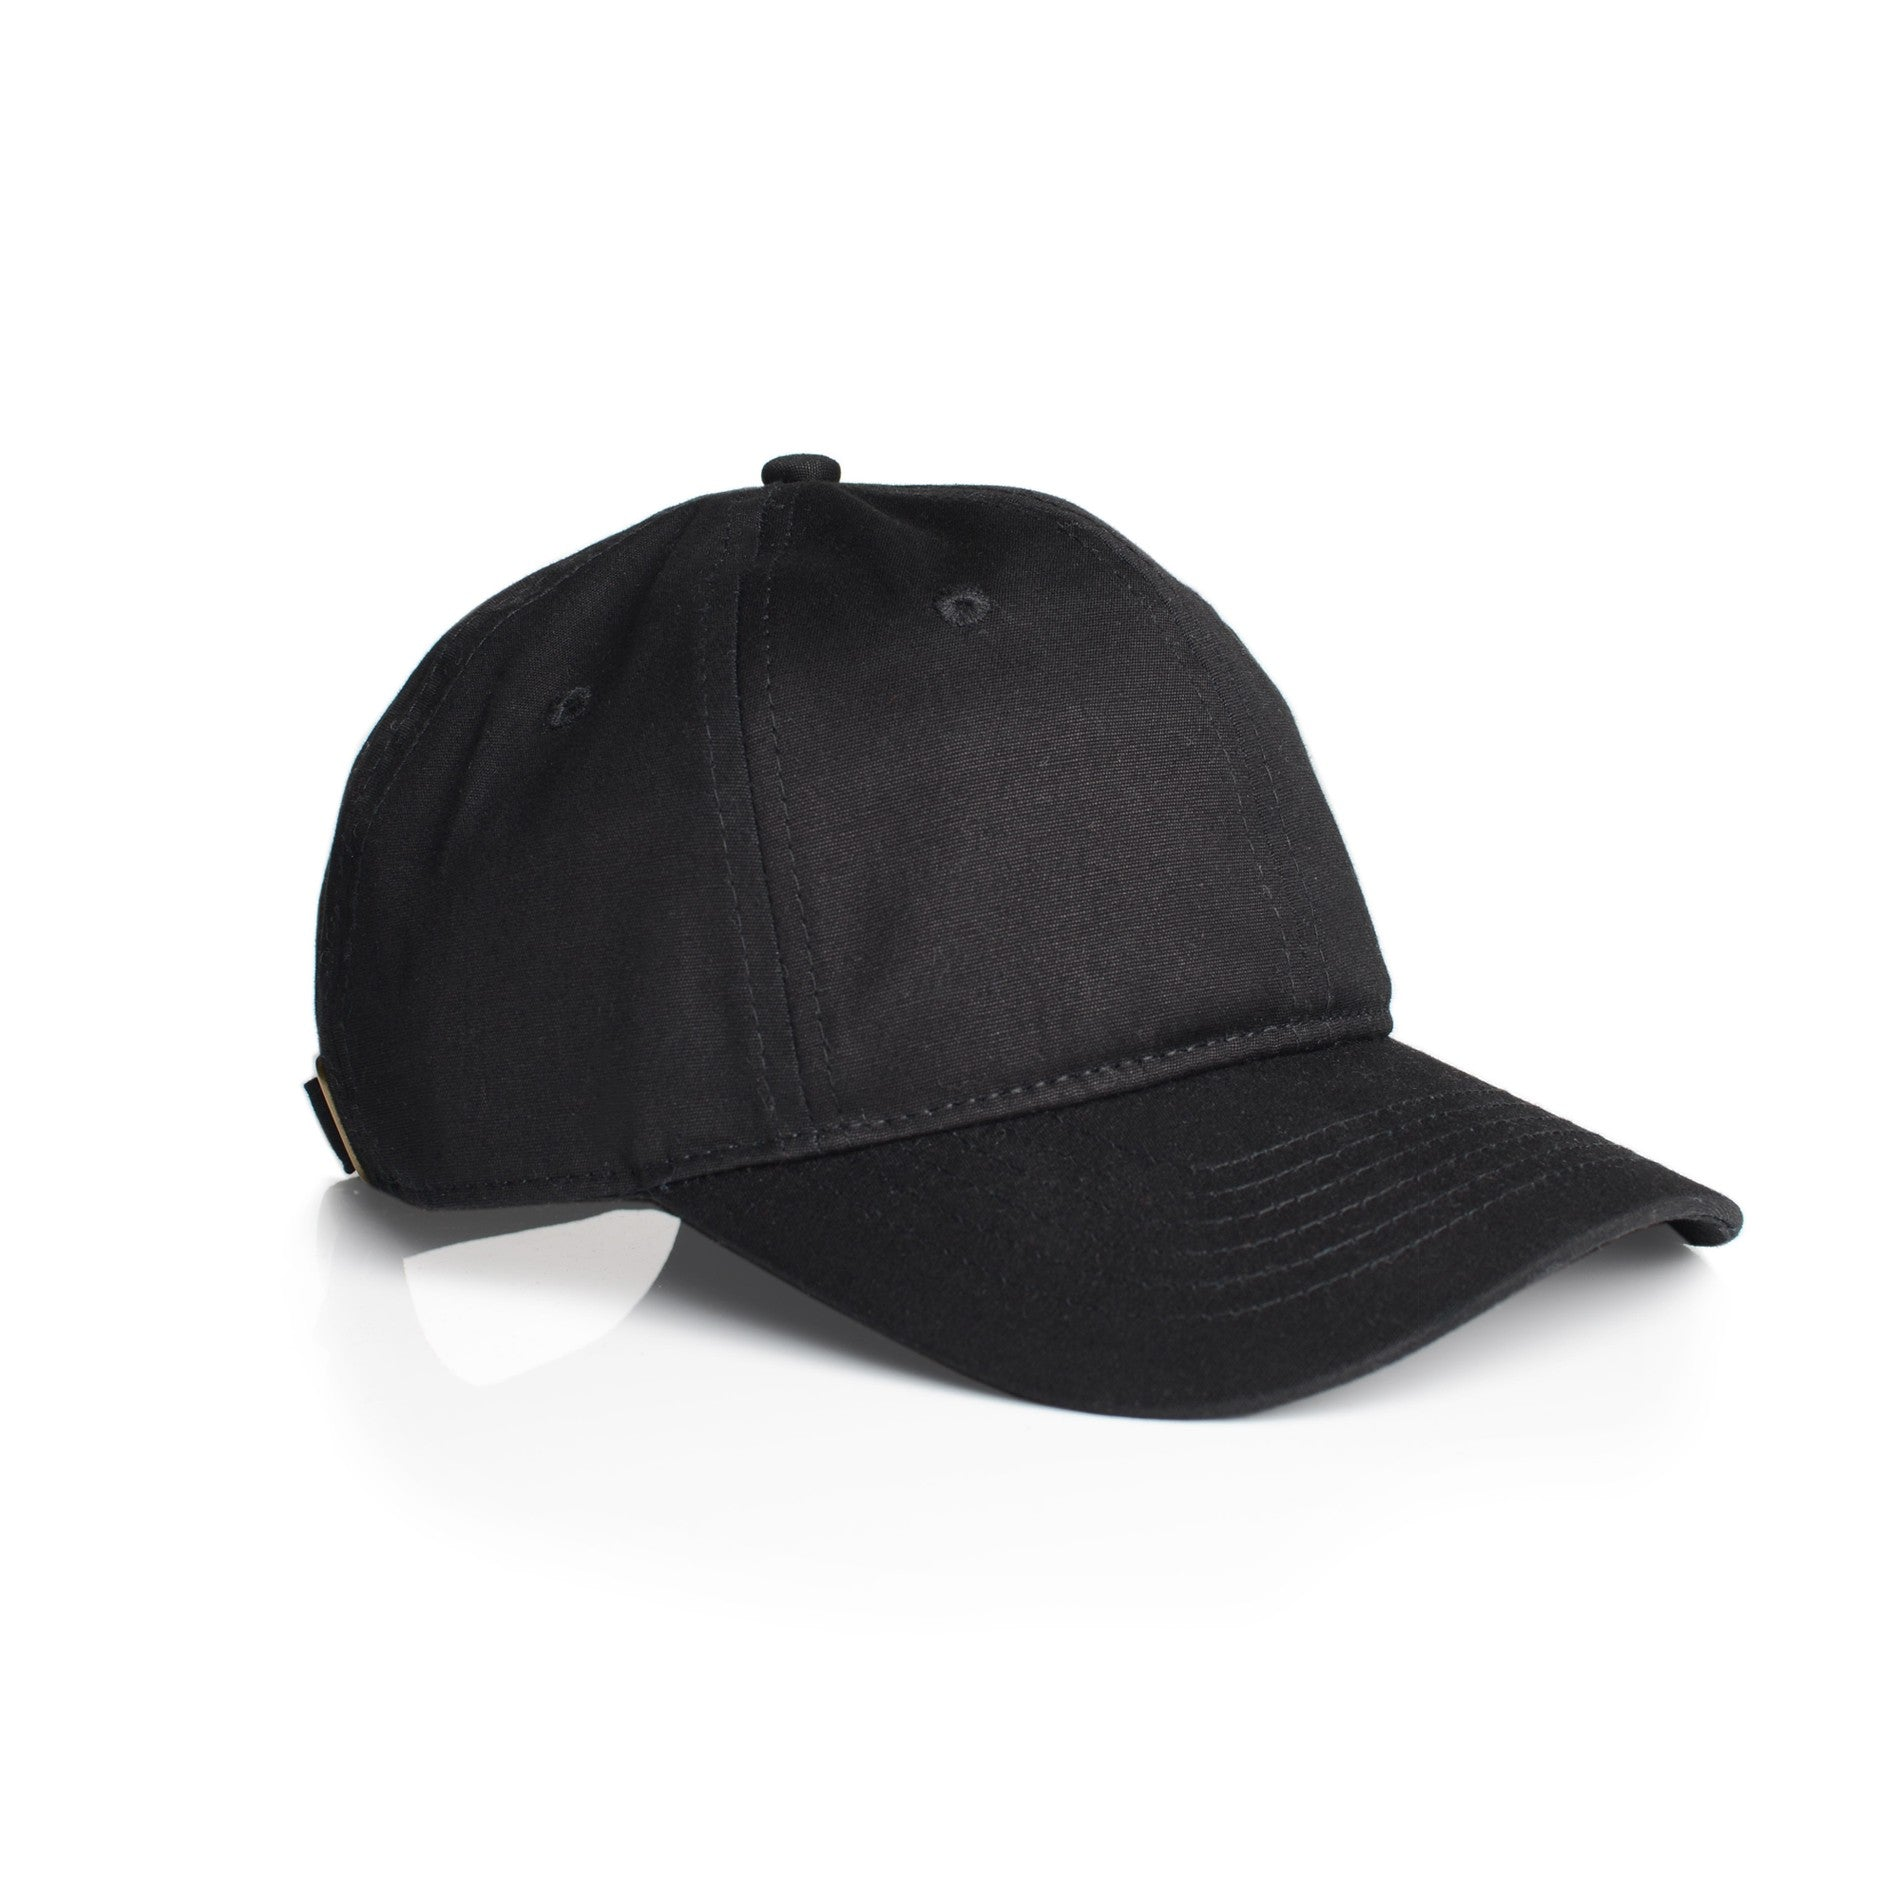 DAVIE SIX PANEL CAP